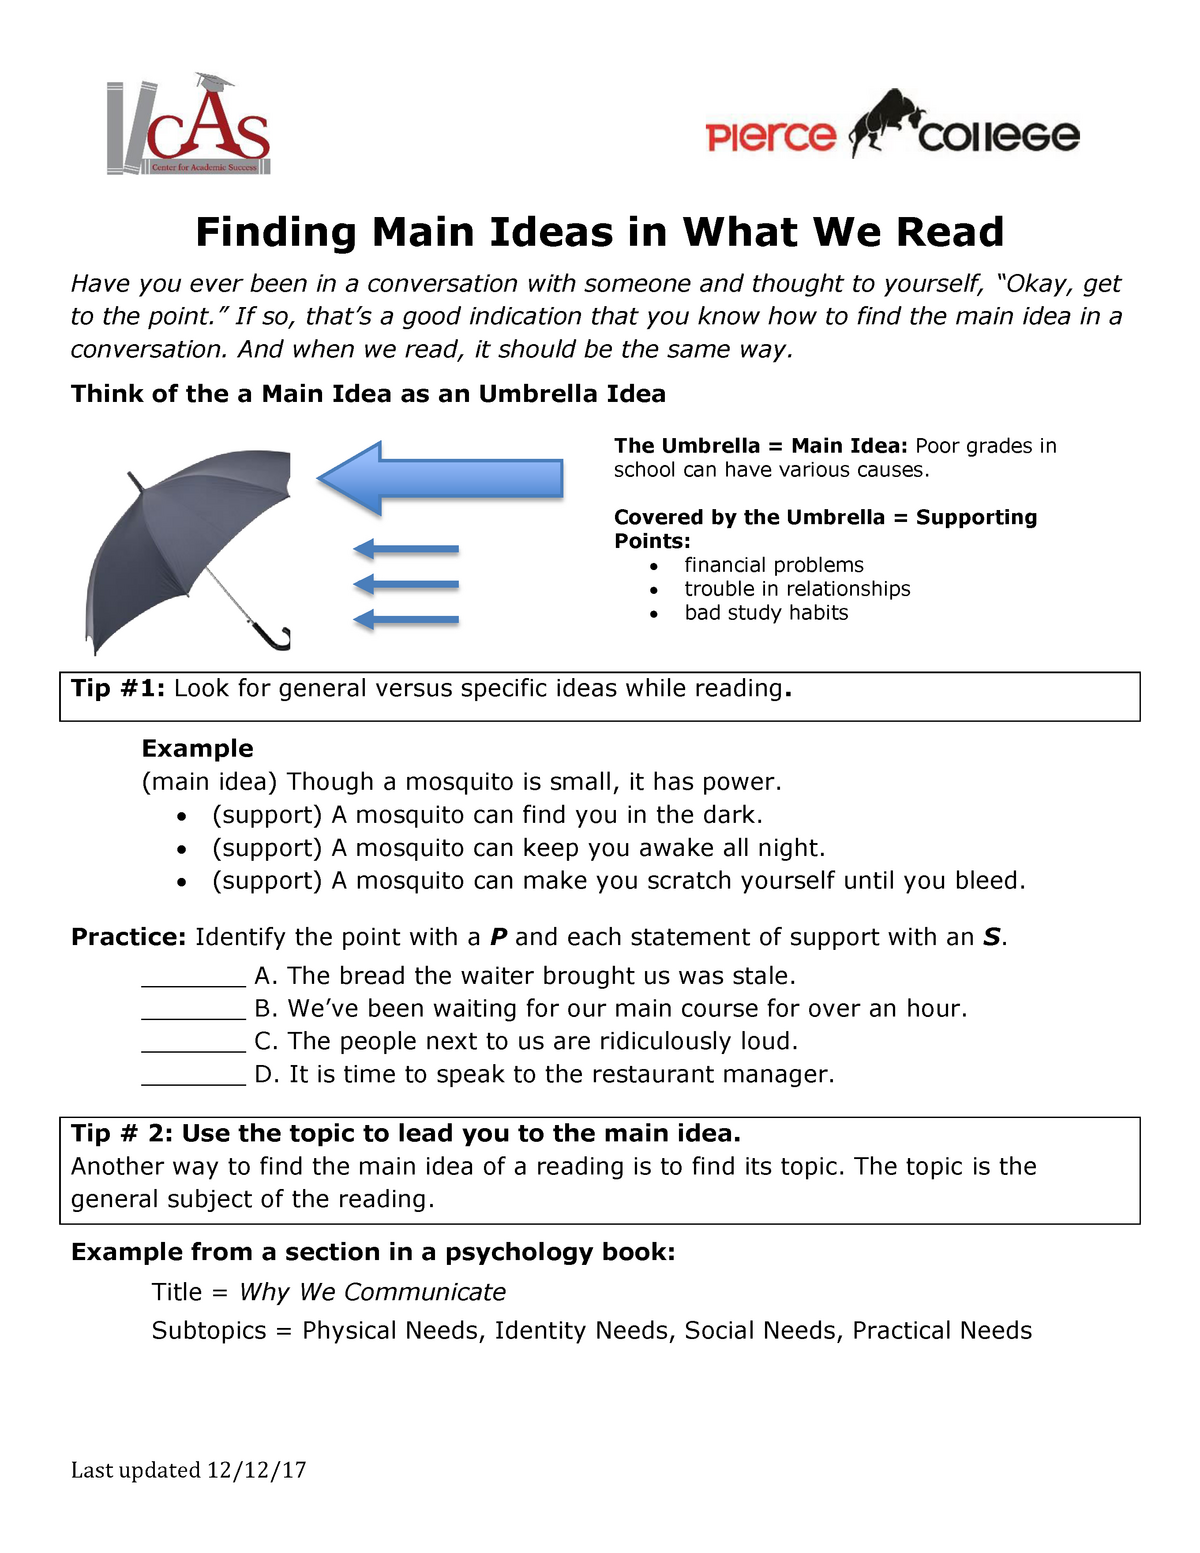 Finding MAIN Ideas IN WHAT WE READ - Eng 101 English - StuDocu